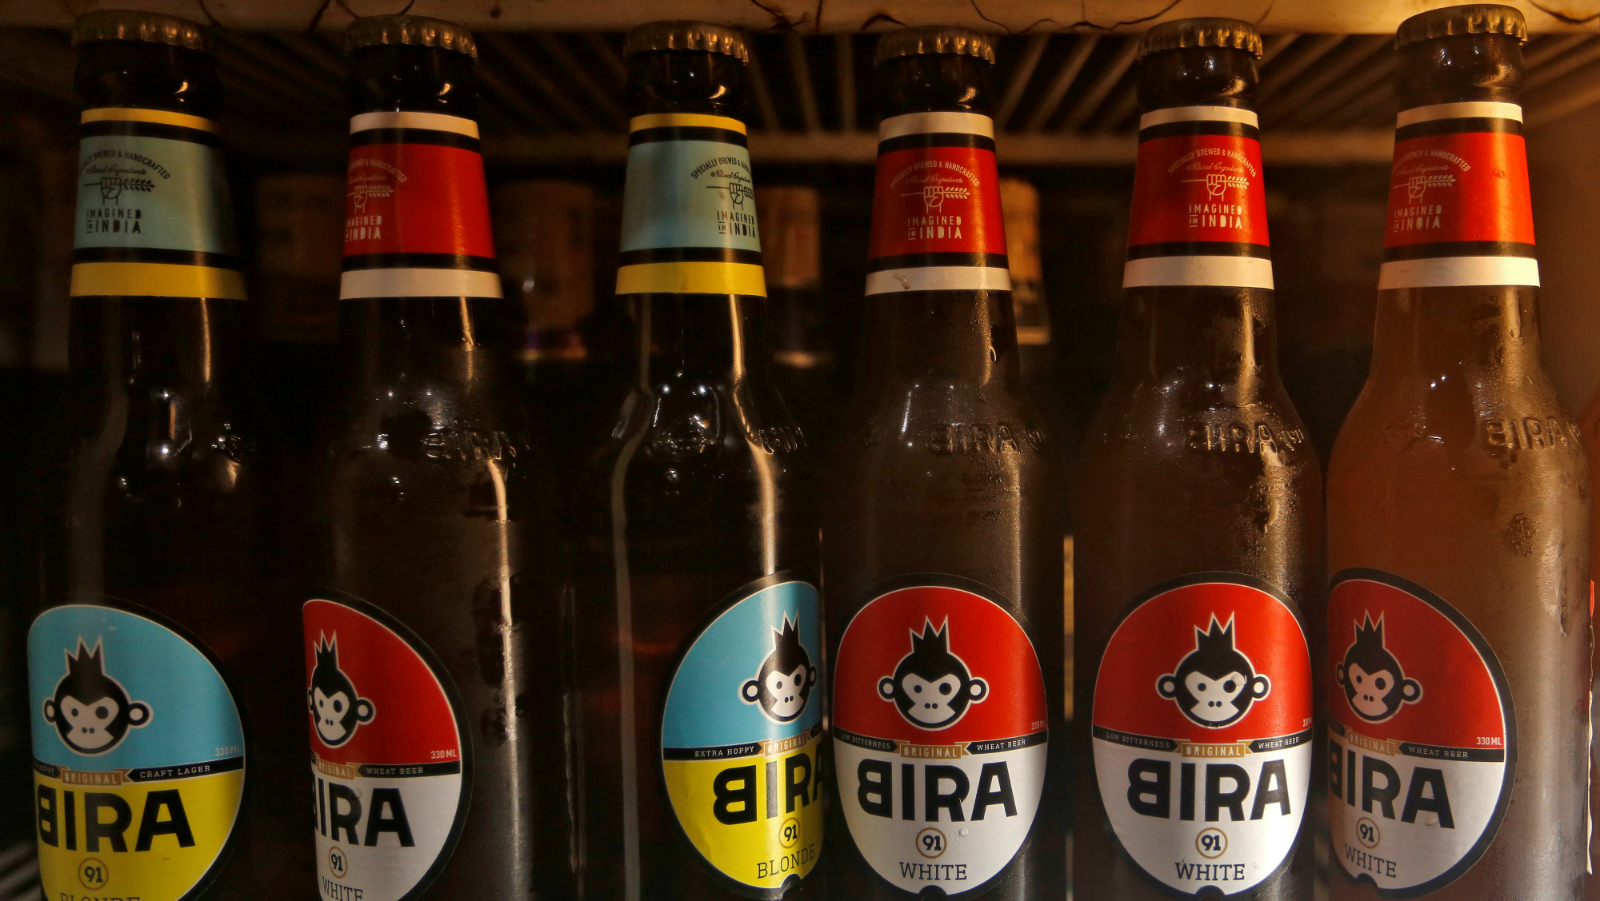 With new cash in the tank, Bira plans to flood the Indian market ...